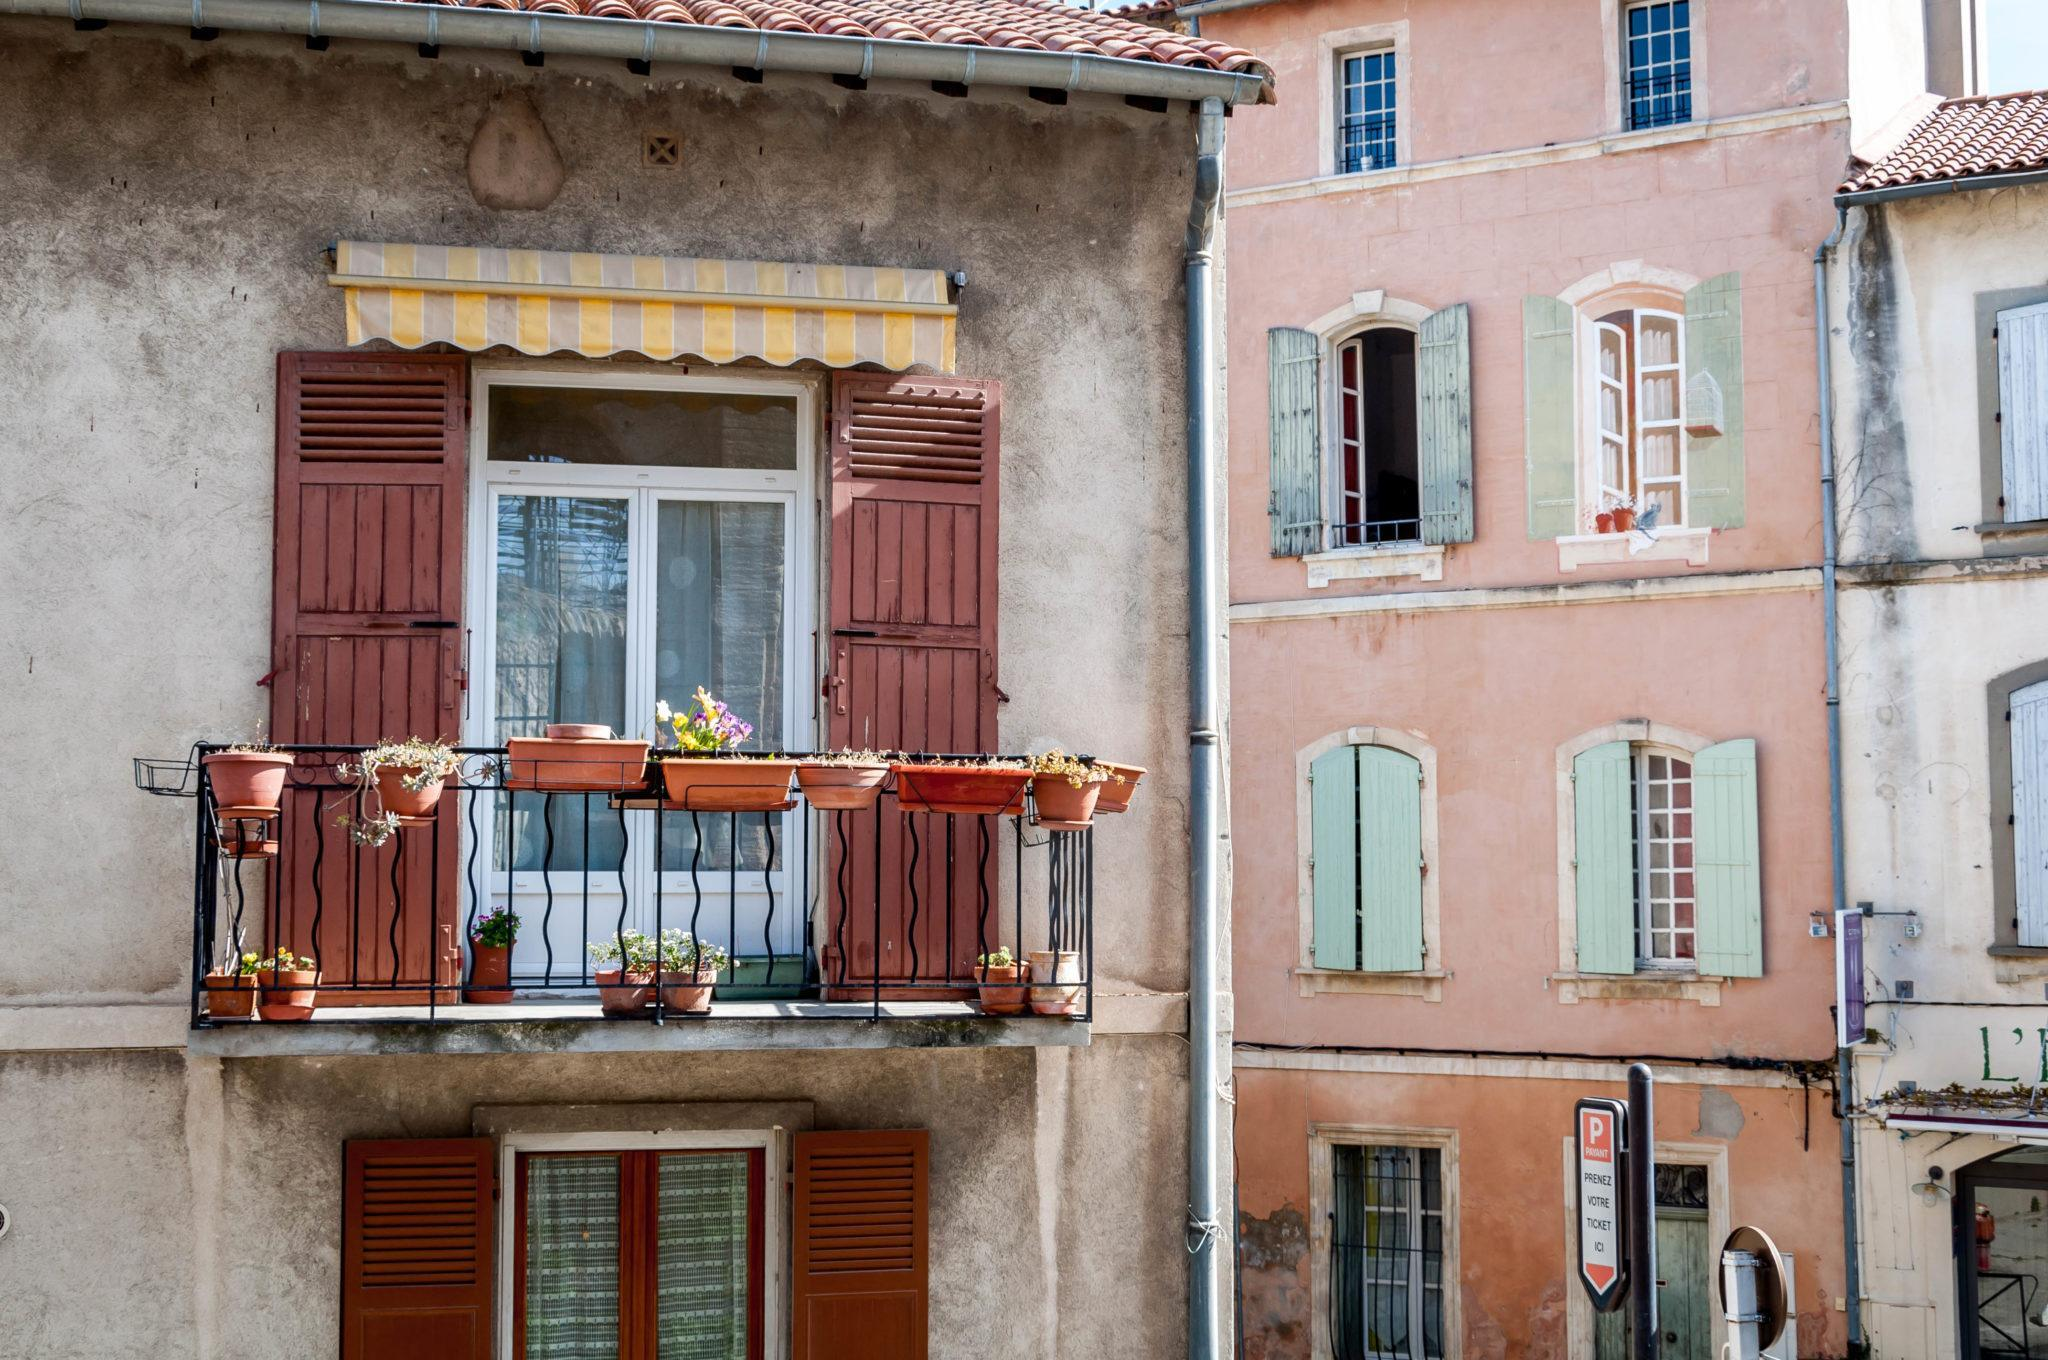 Window boxes and colorful window shutters in Arles, France